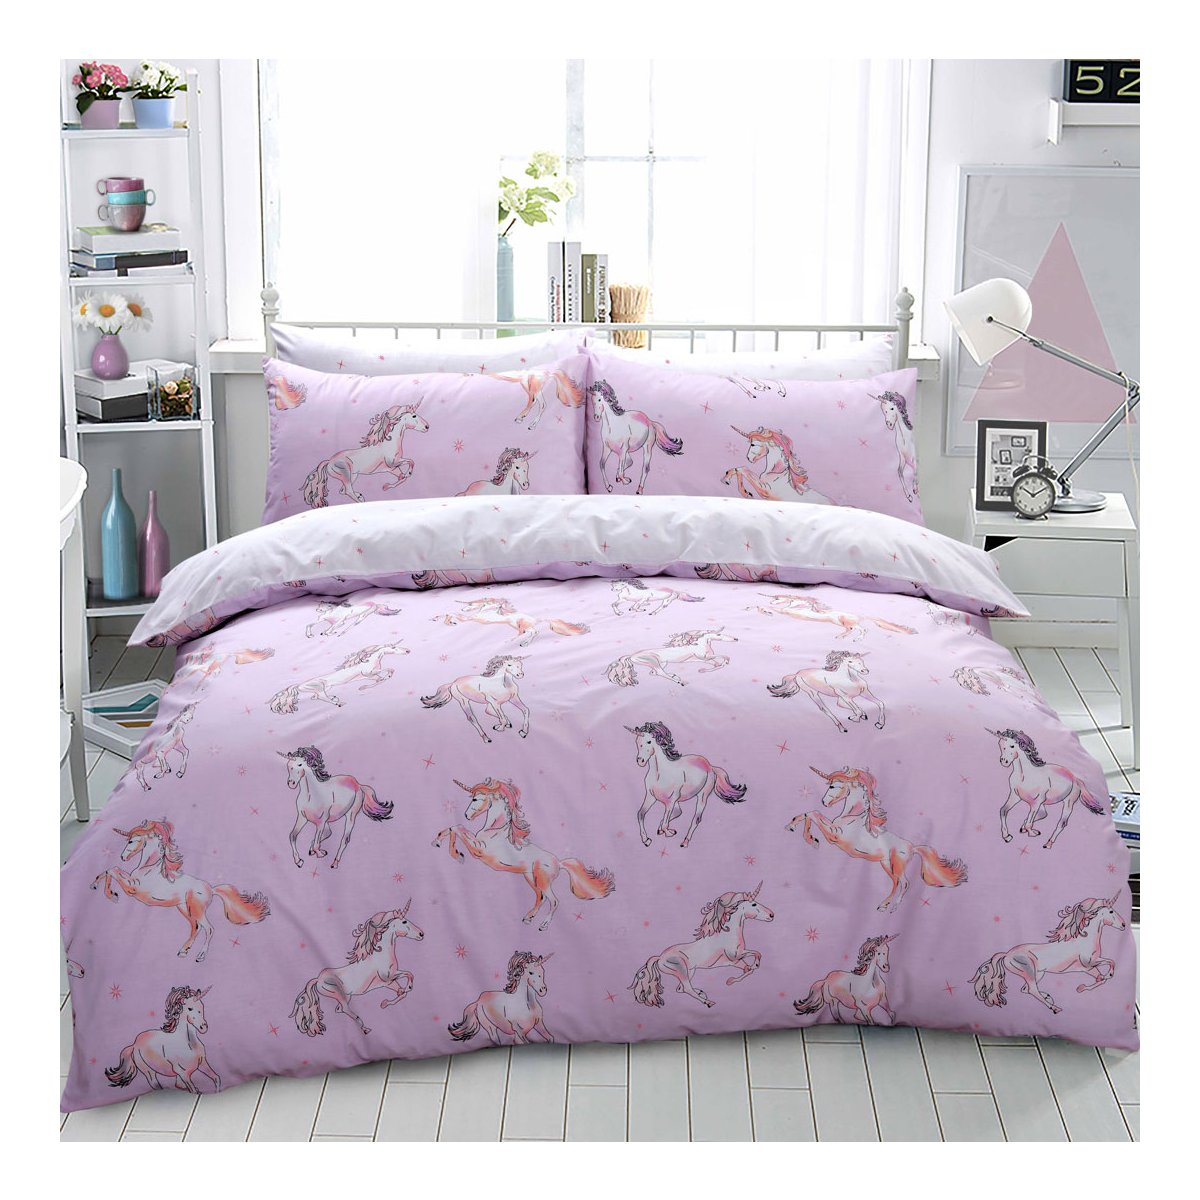 Paintly Unicorn Pink Bedding - Reversible Duvet Cover and Pillowcase Set